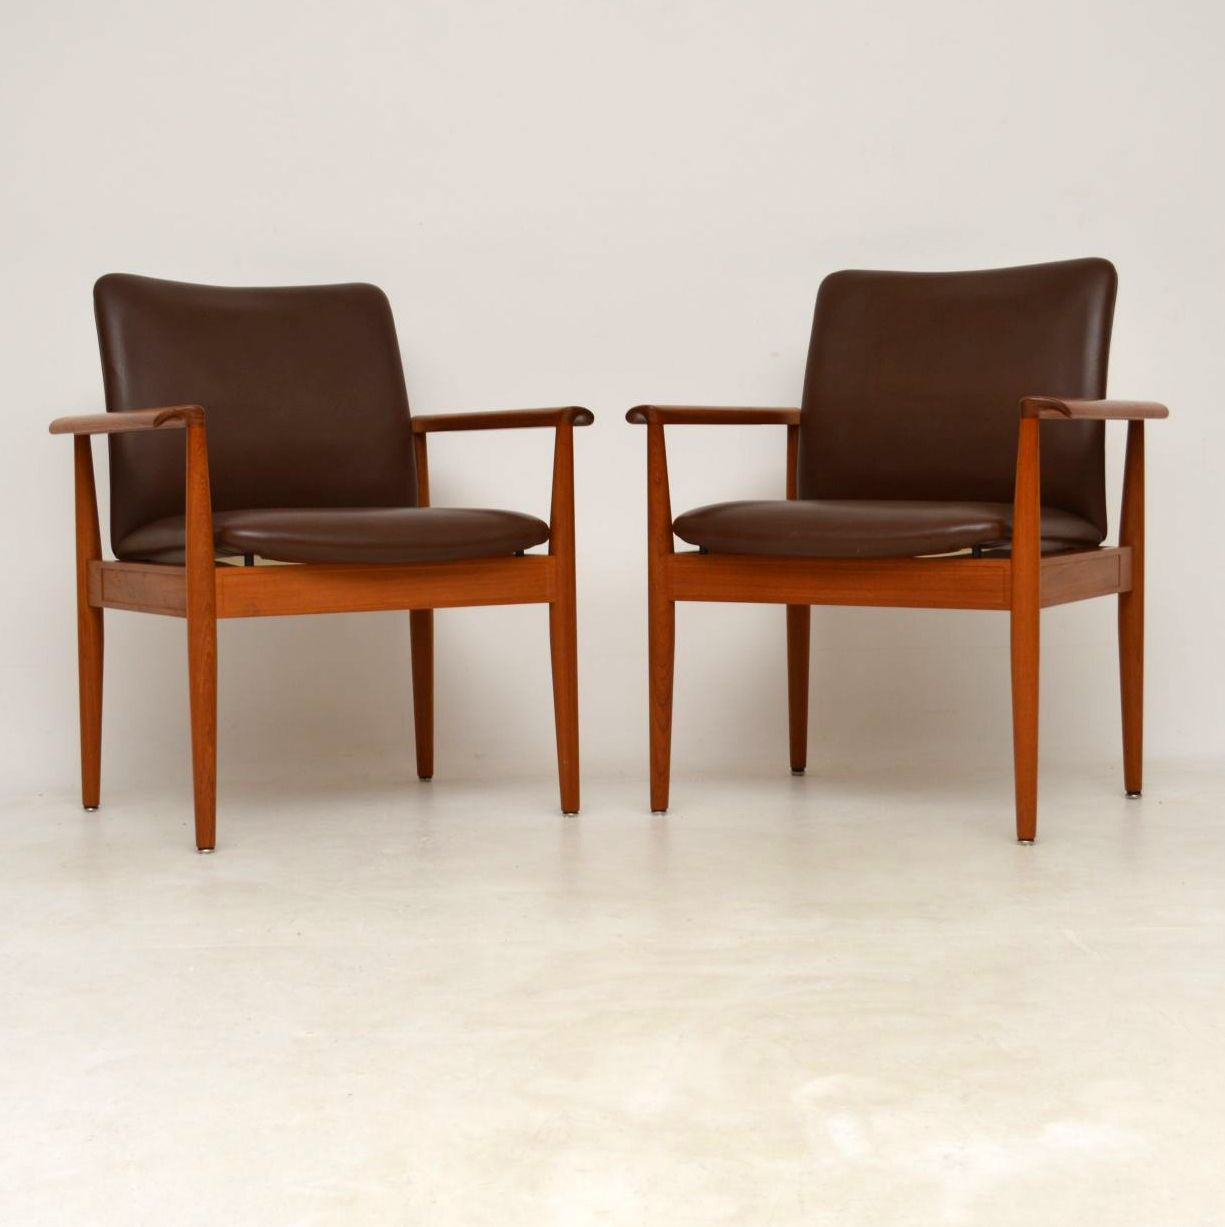 finn juhl sofabord teak leather sofa with chaise canada 1960s pair of danish and vintage armchairs by